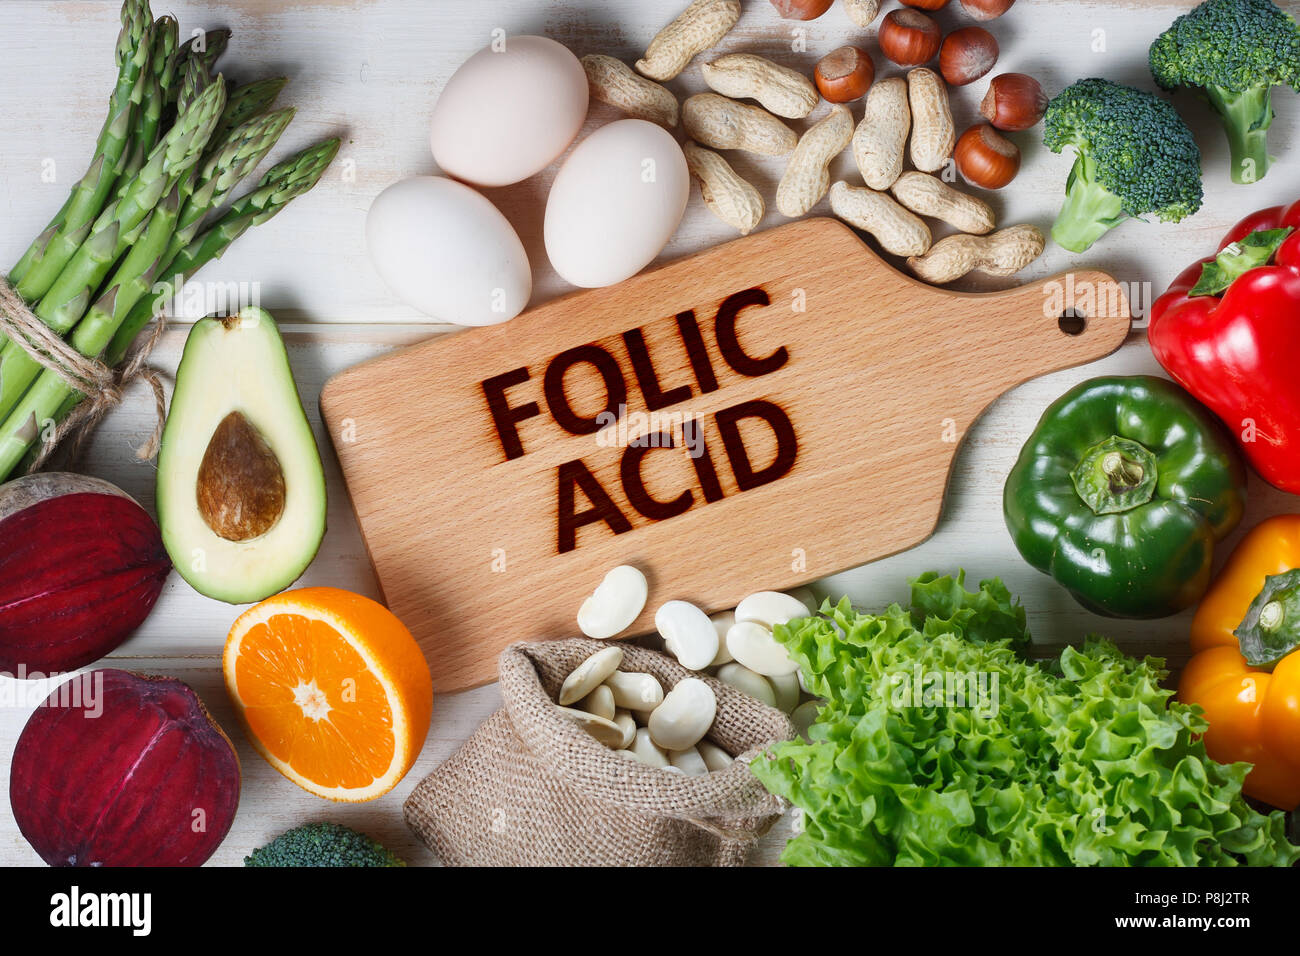 Natural sources of folic acid as asparagus, broccoli, eggs, salad, avocado, paprika, nuts, orange, beetroots and beans - Stock Image